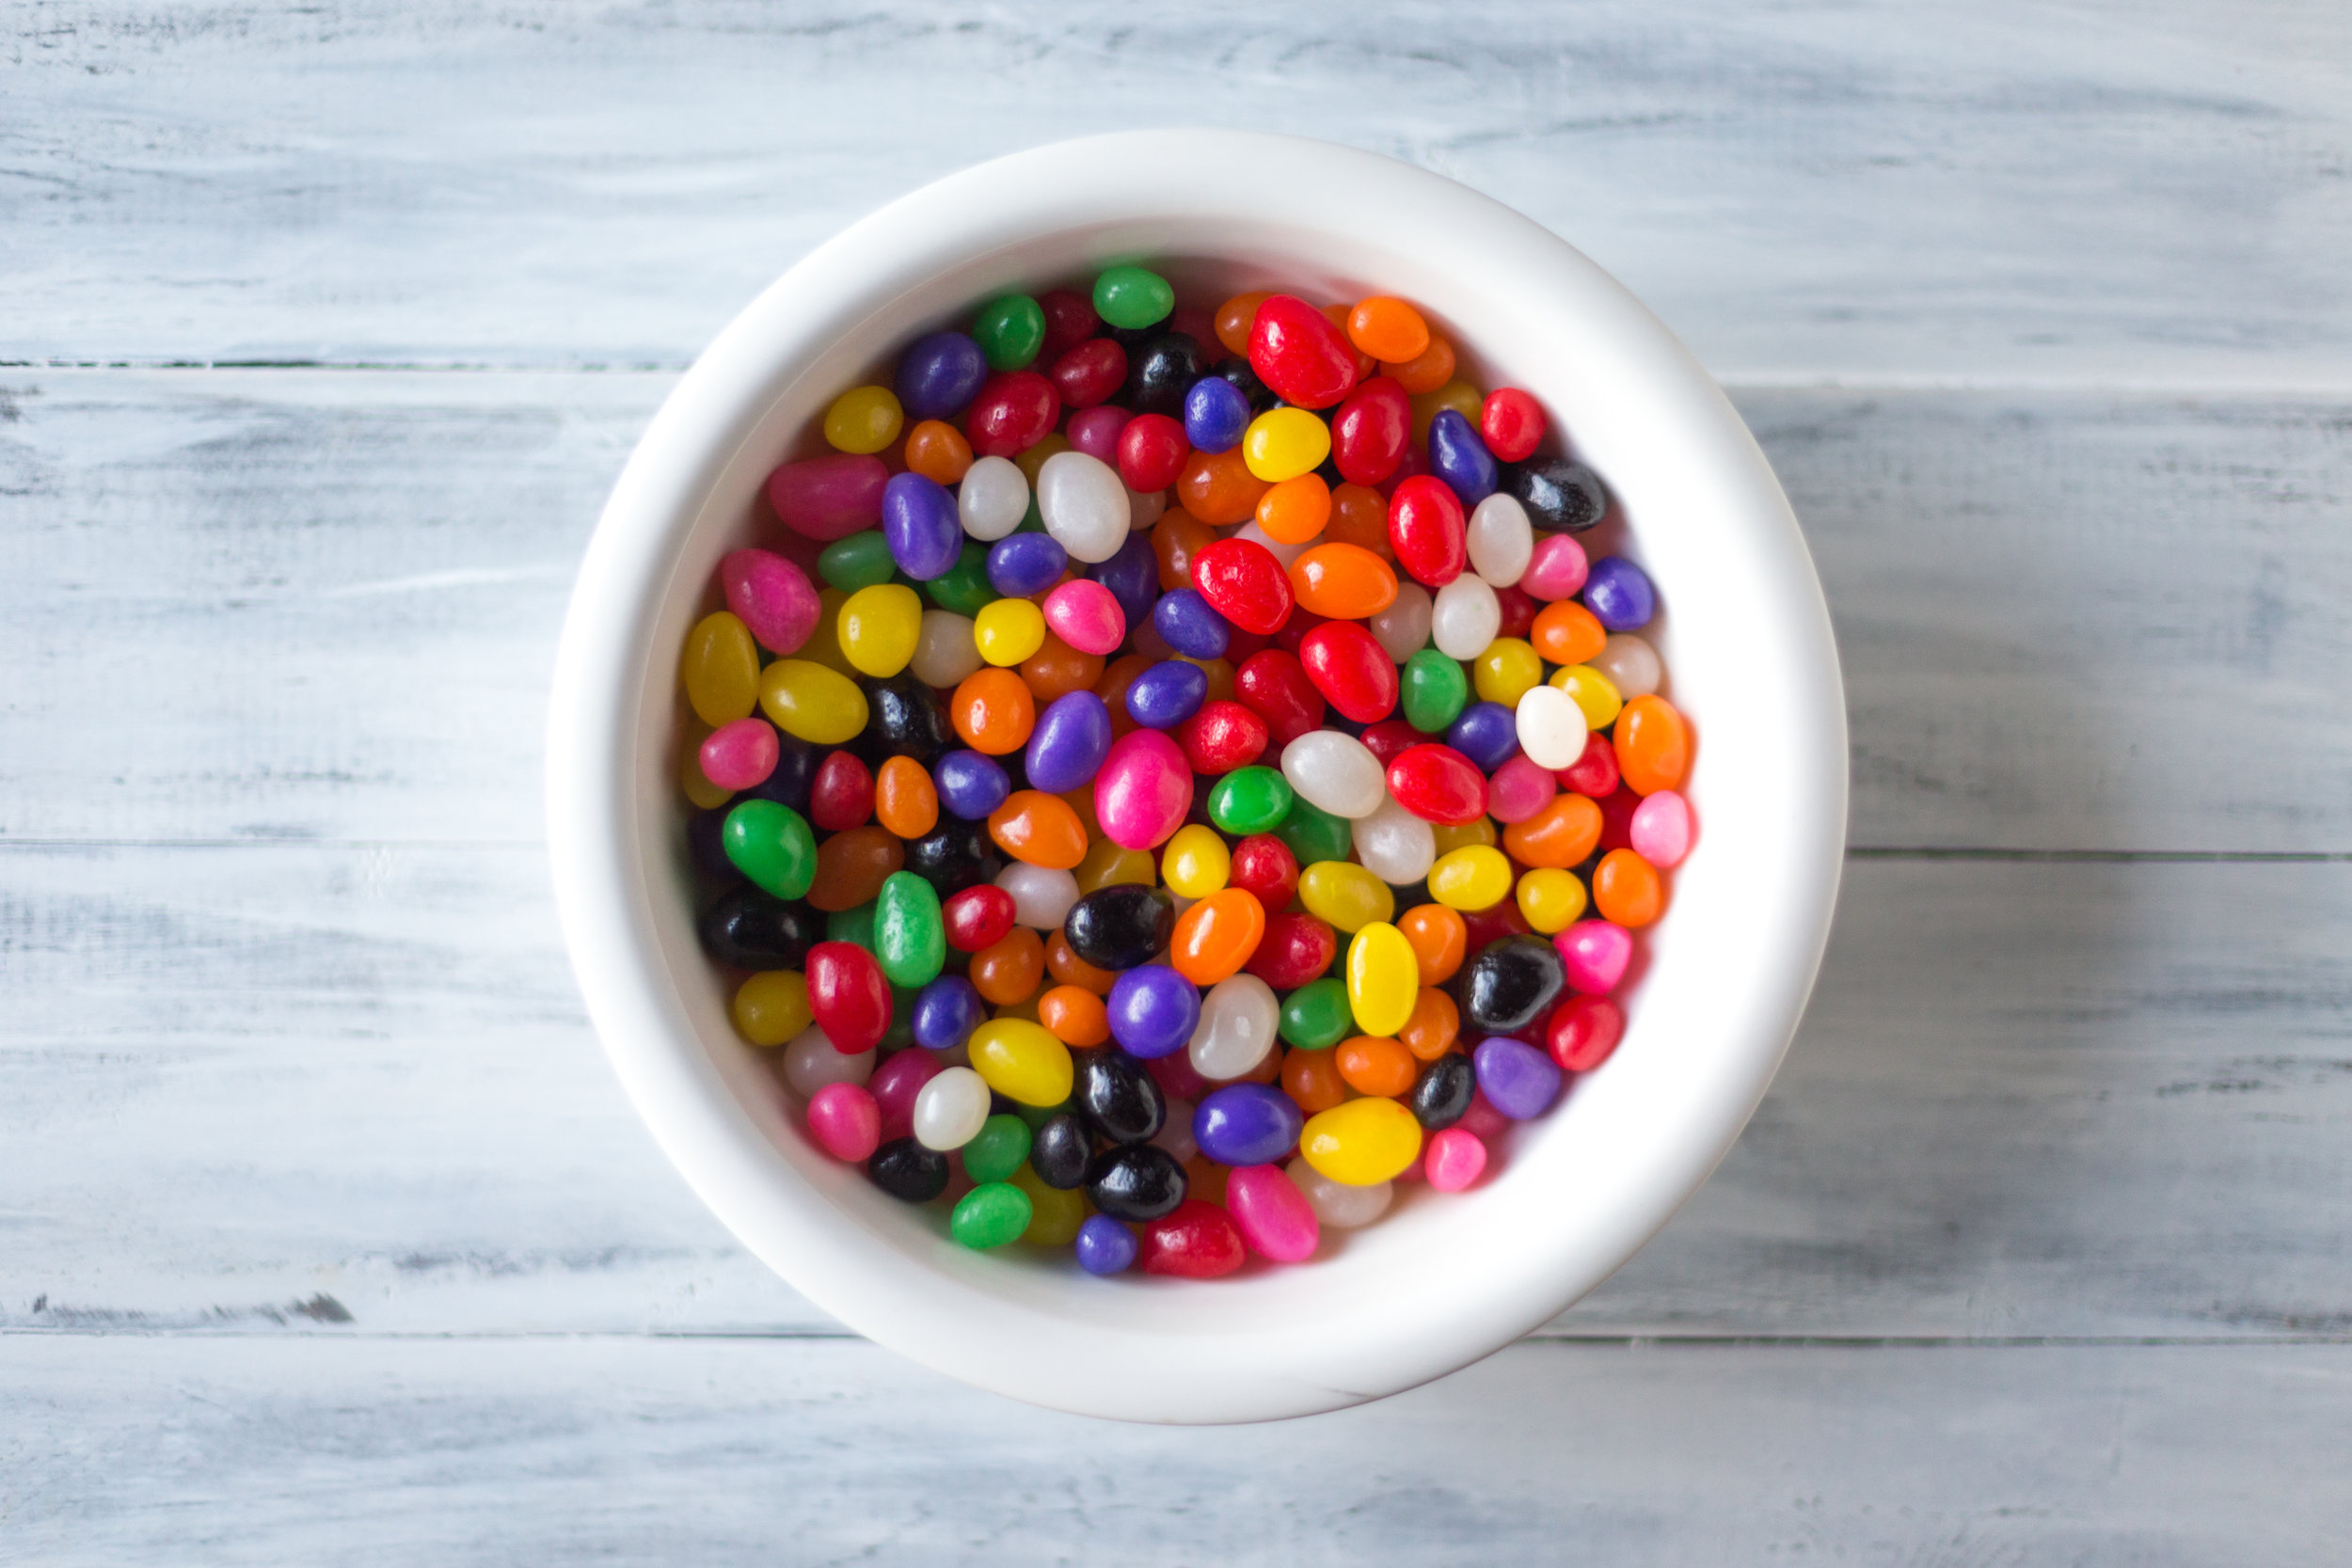 A bowl of jellybeans